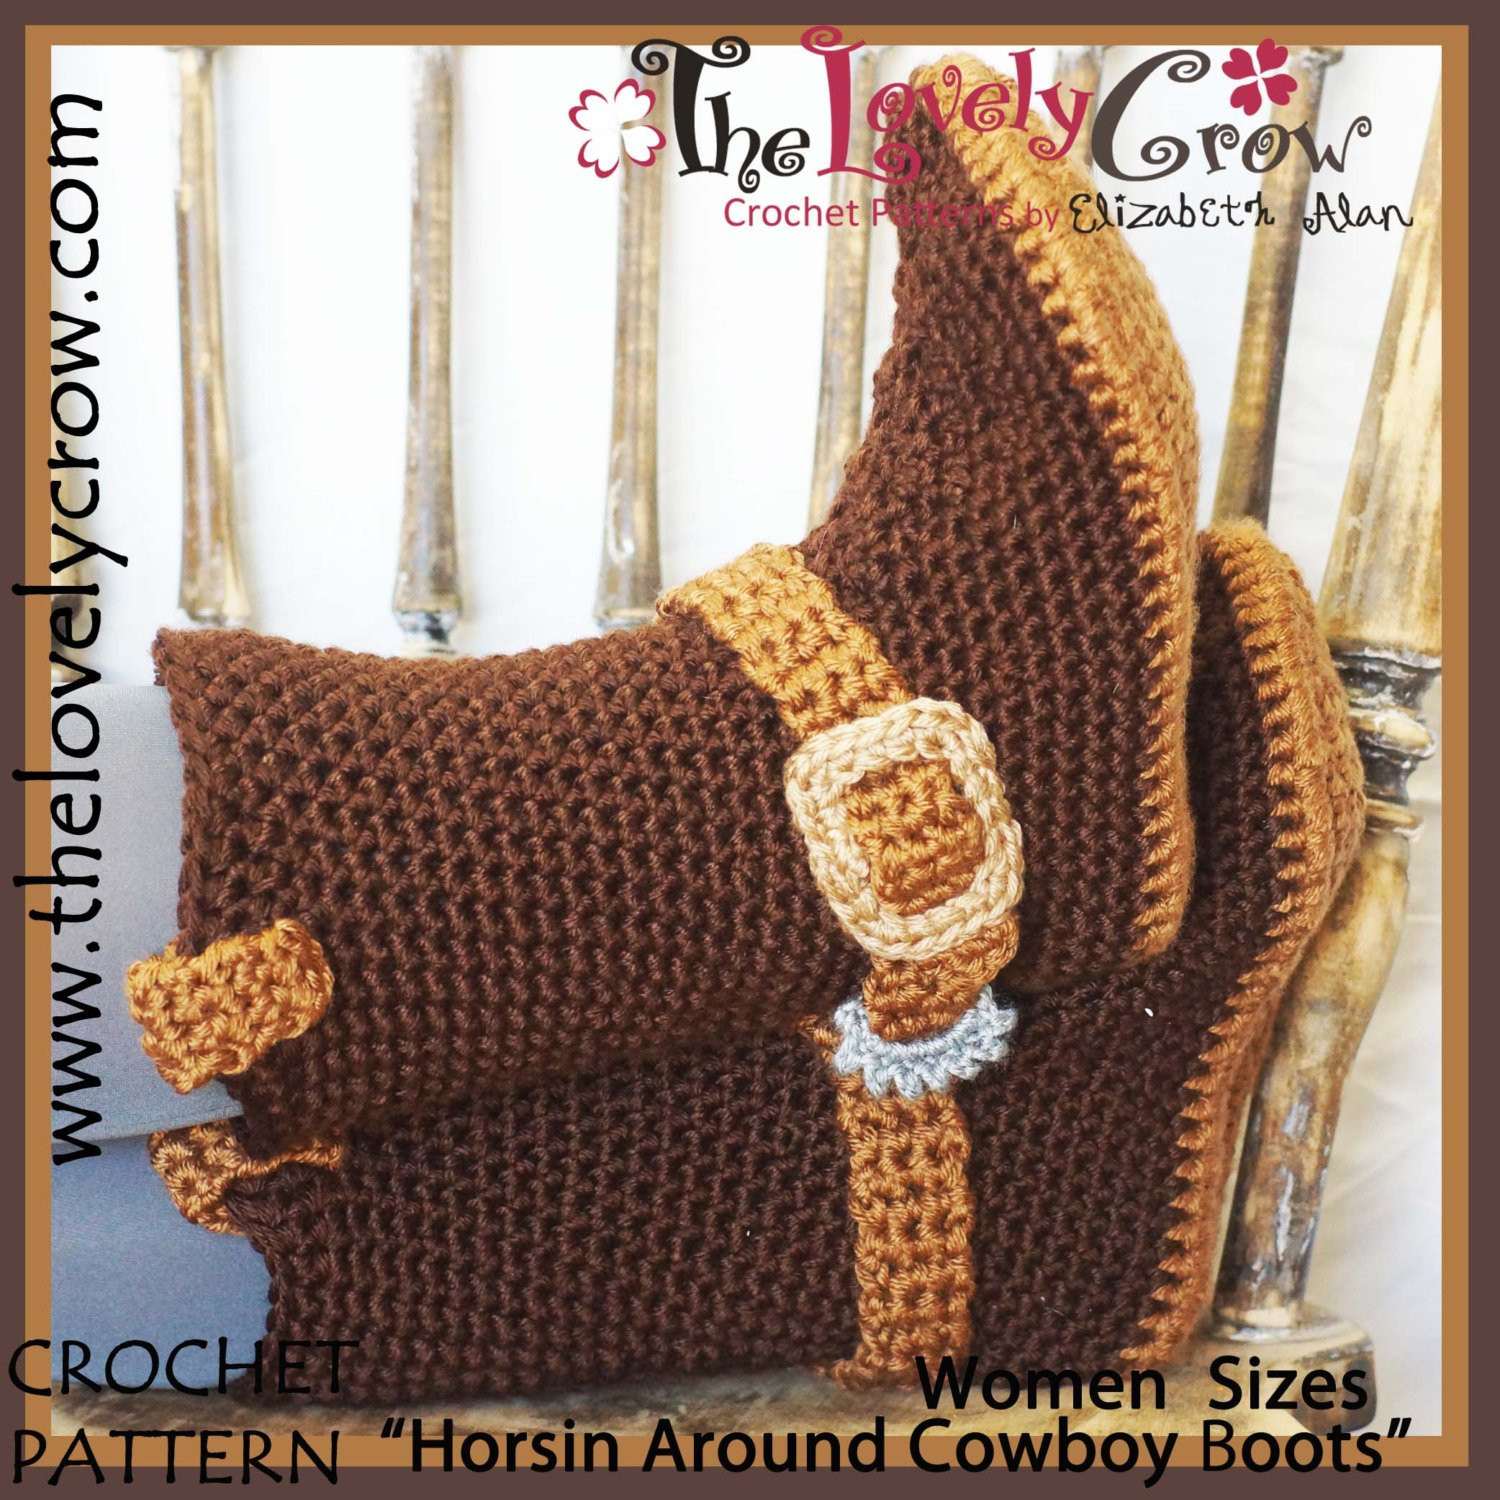 Crochet Cowboy Boots Luxury Crochet Pattern Adult Sizes Cowboy Boots Of Marvelous 49 Pictures Crochet Cowboy Boots